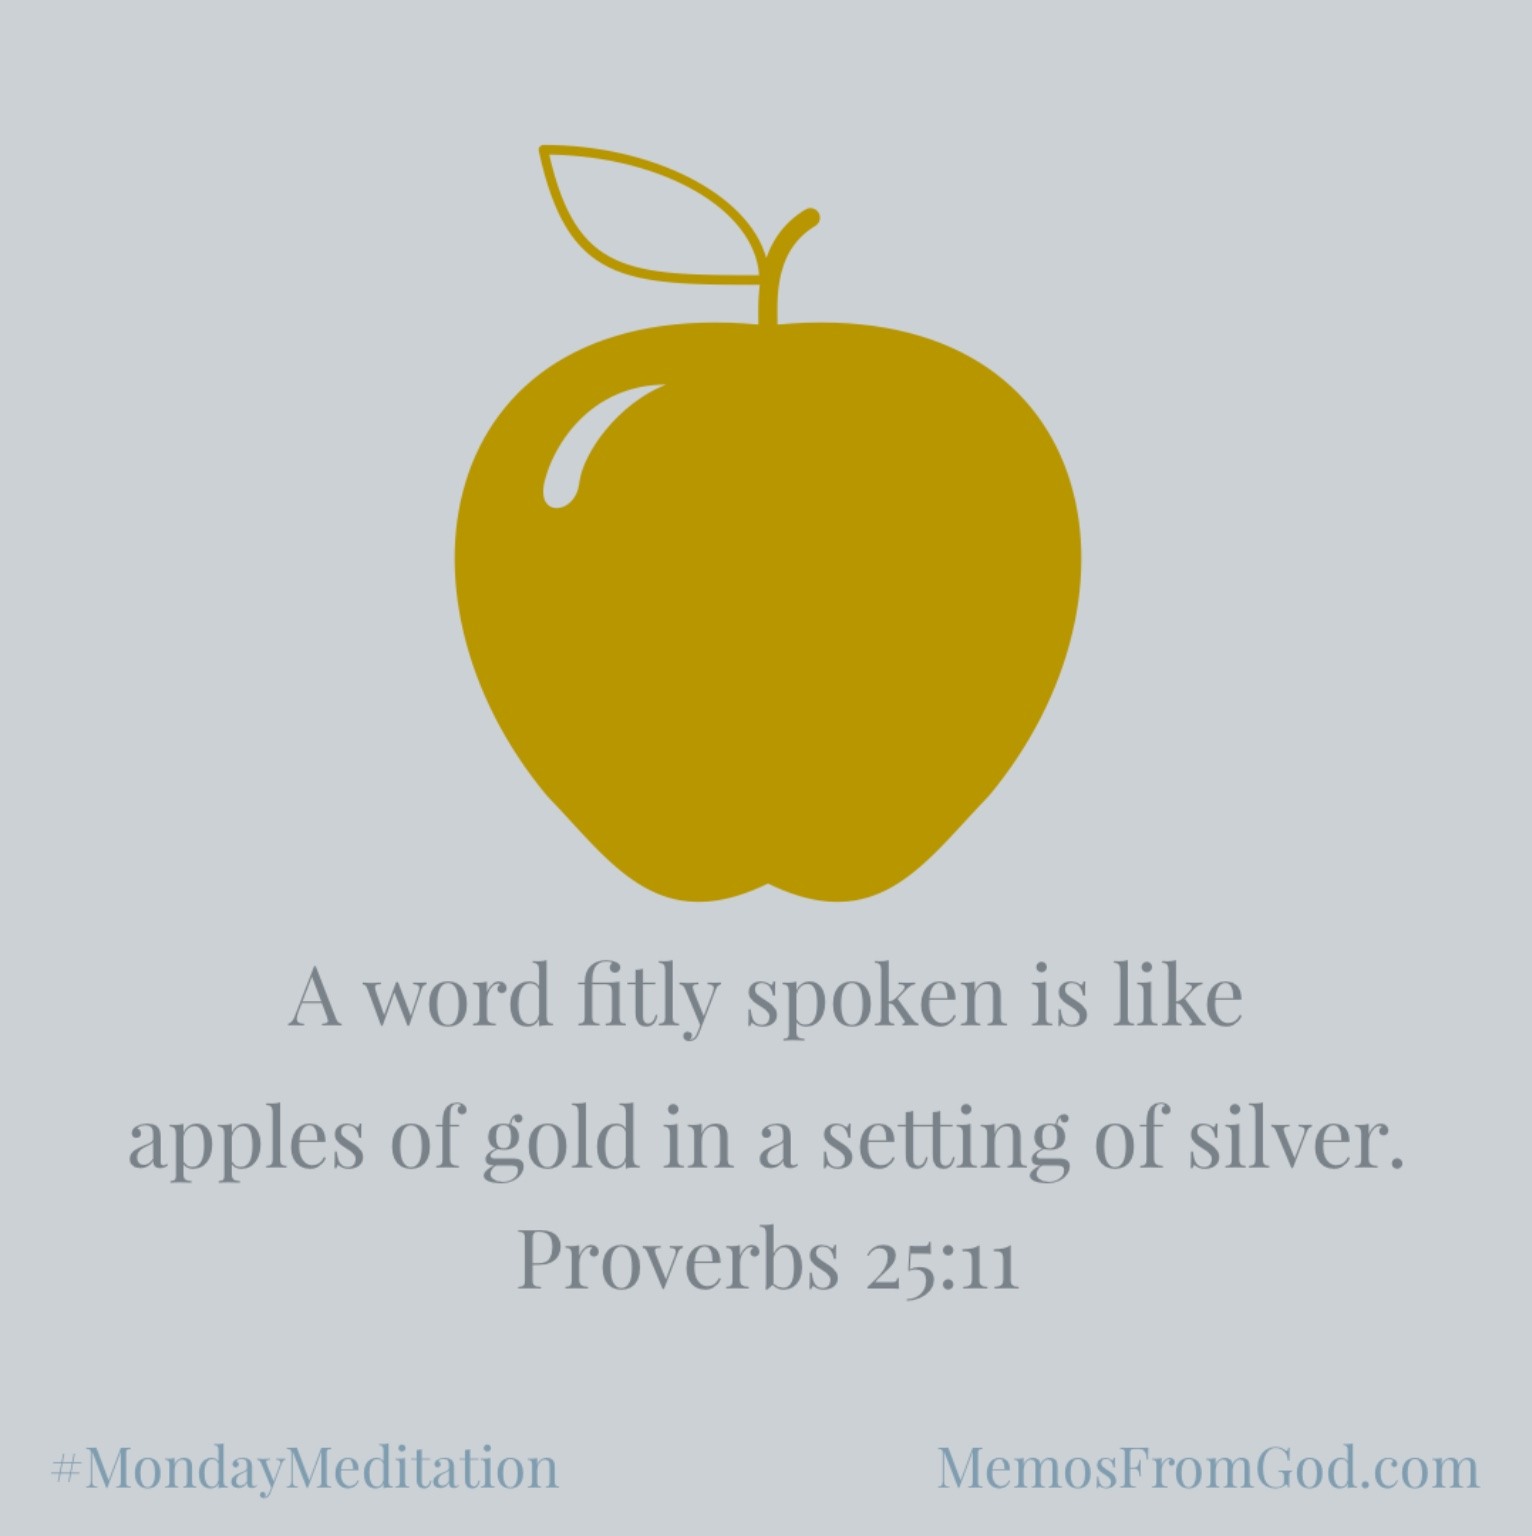 A word fitly spoken is like apples of gold in a setting of silver. Proverbs 25:11